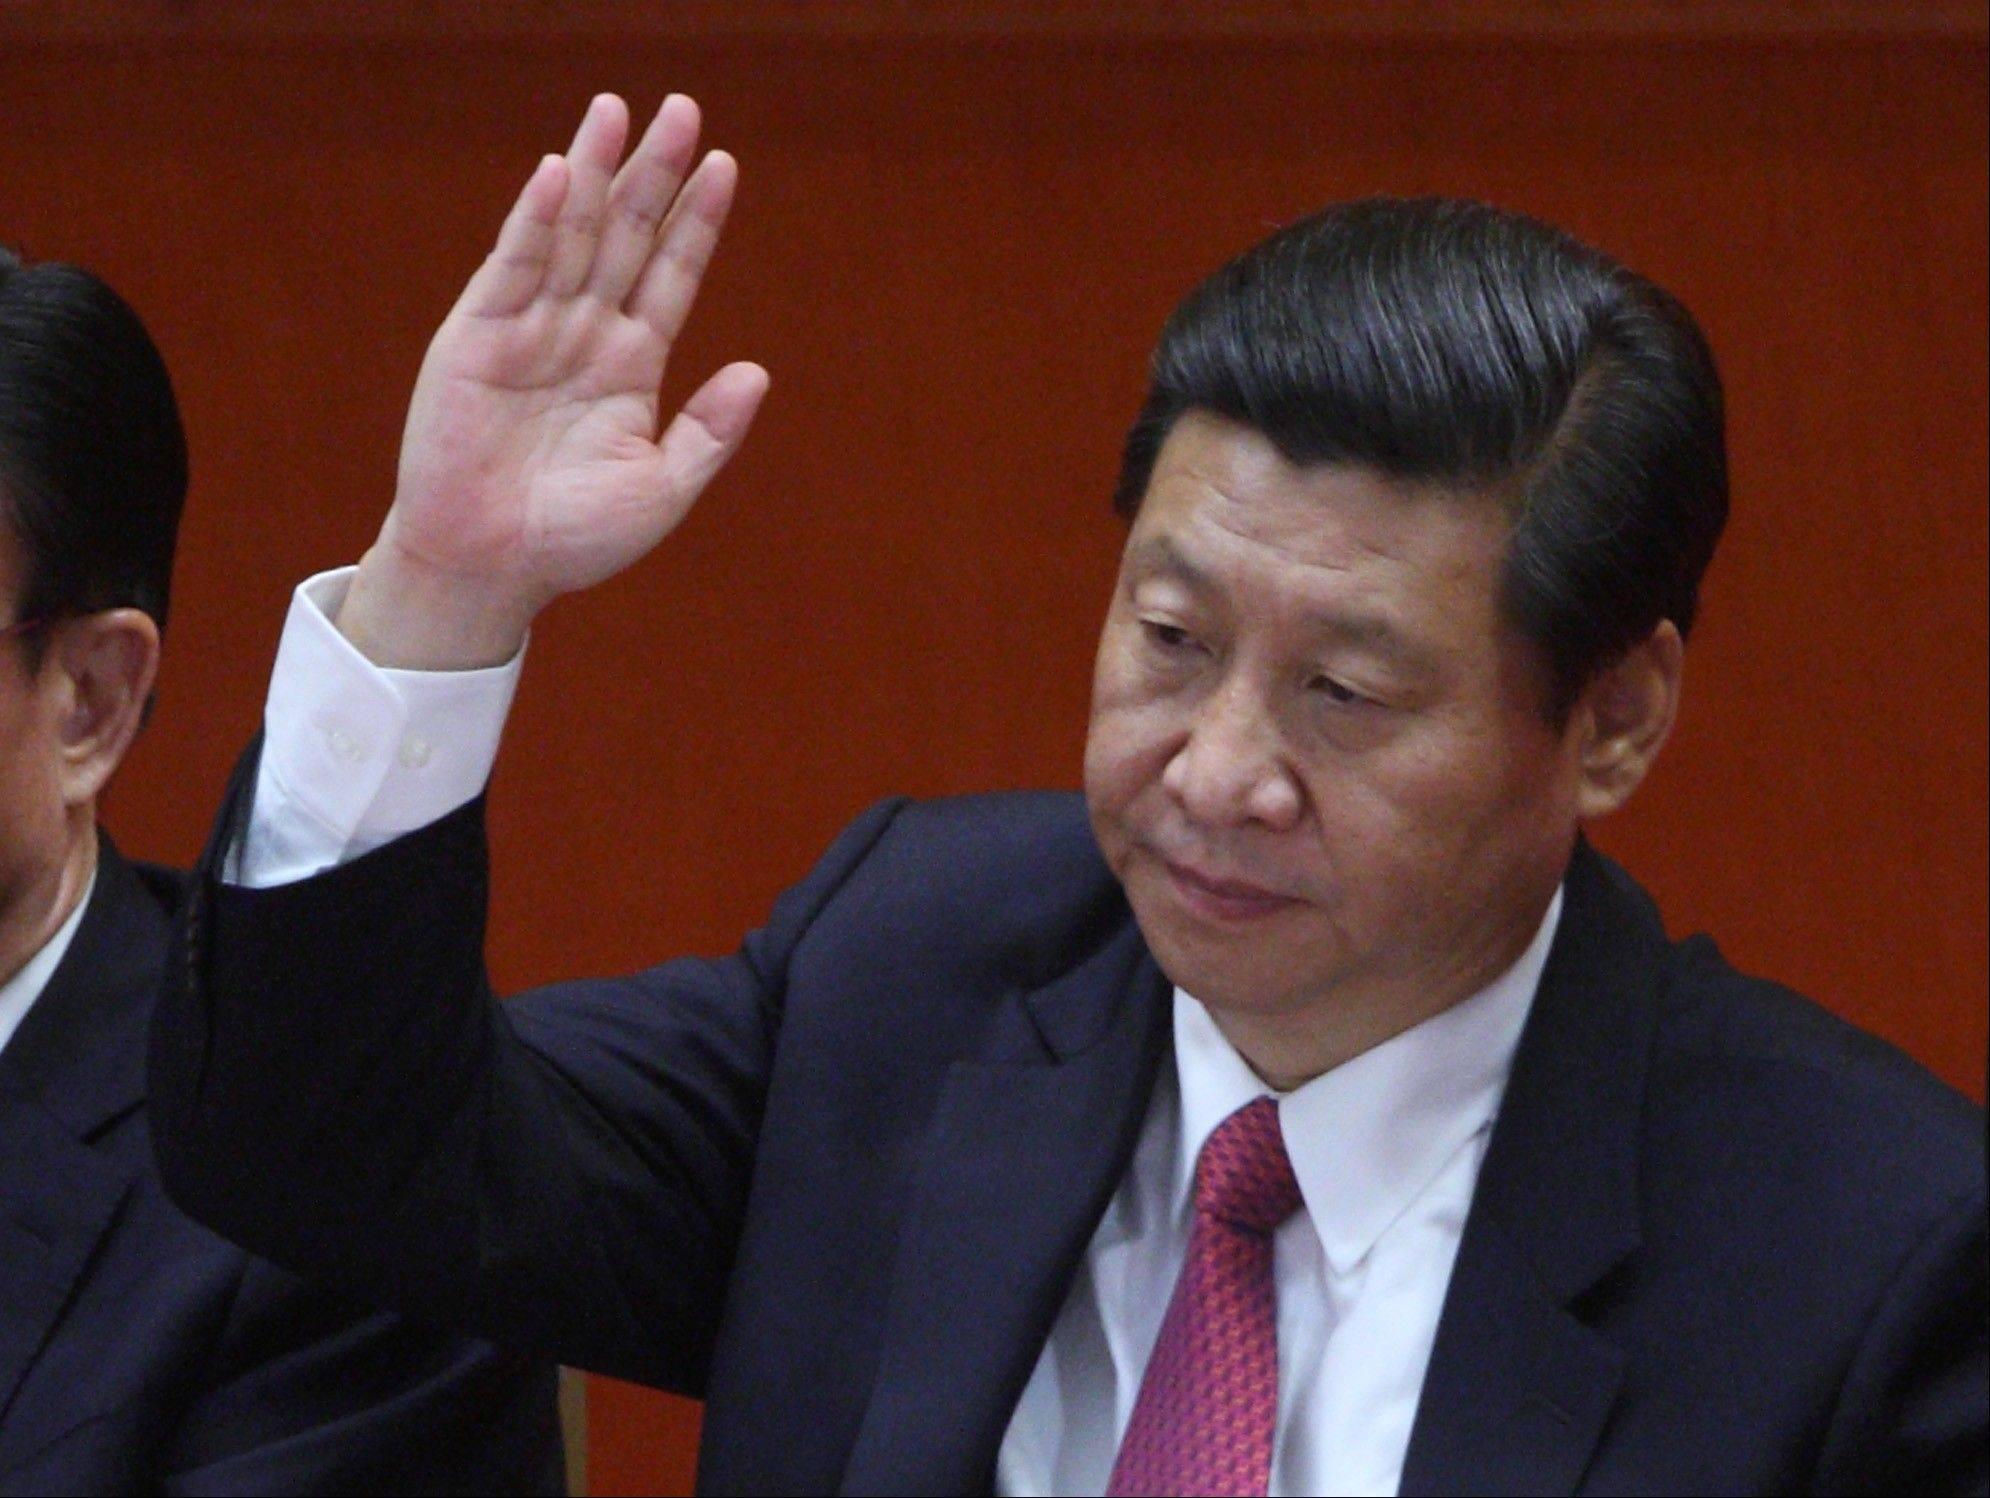 Xi Jinping, China�s vice president, raises his hand during the closing session of the 18th National Congress of the Communist Party of China at the Great Hall of the People in Beijing, China, on Wednesday, Nov. 14, 2012. Xi and Vice Premier Li Keqiang were reappointed to the Chinese Communist Party�s Central Committee, positioning them to take over the top two posts in the world�s second-biggest economy.